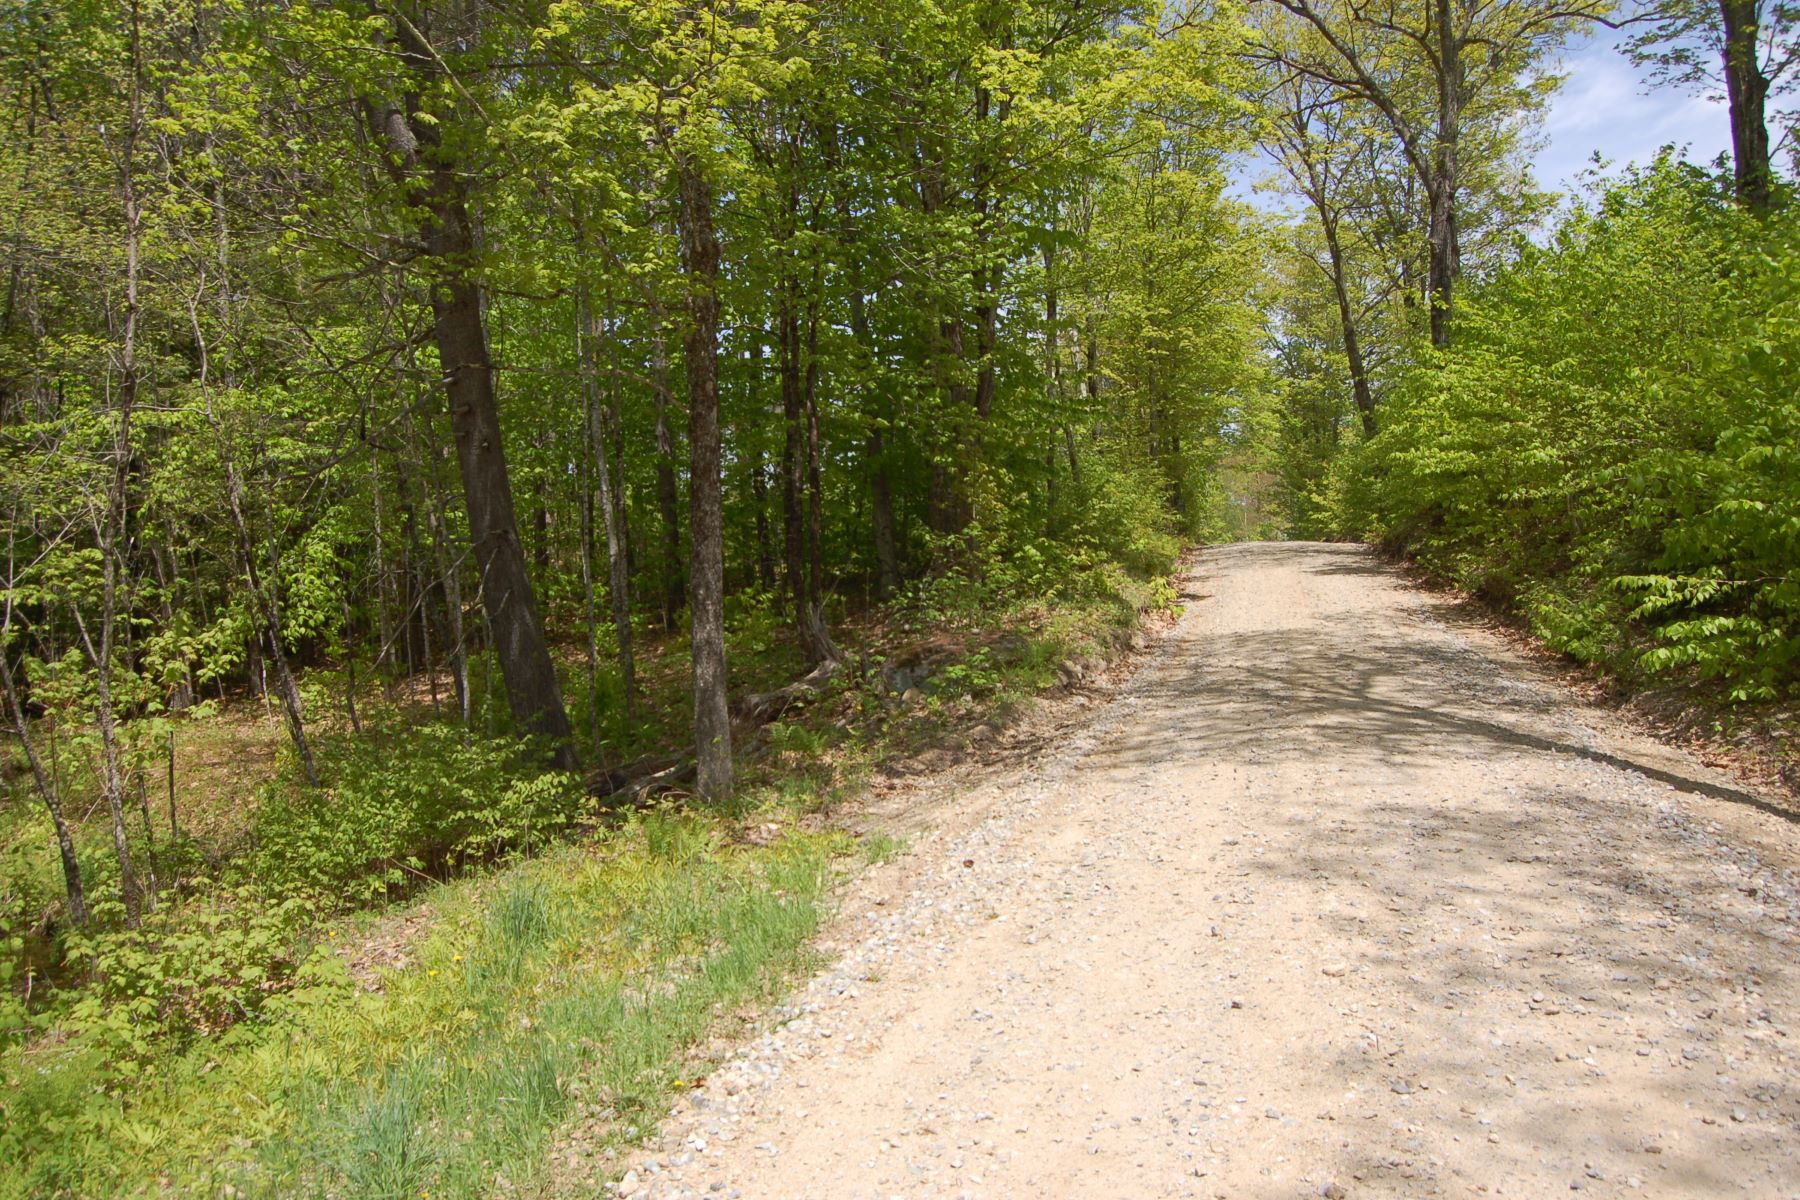 Land for Sale at 11.5 Acre Wooded Lot in Wilmot NH North Wilmot & Richards Rd Wilmot, New Hampshire 03287 United States